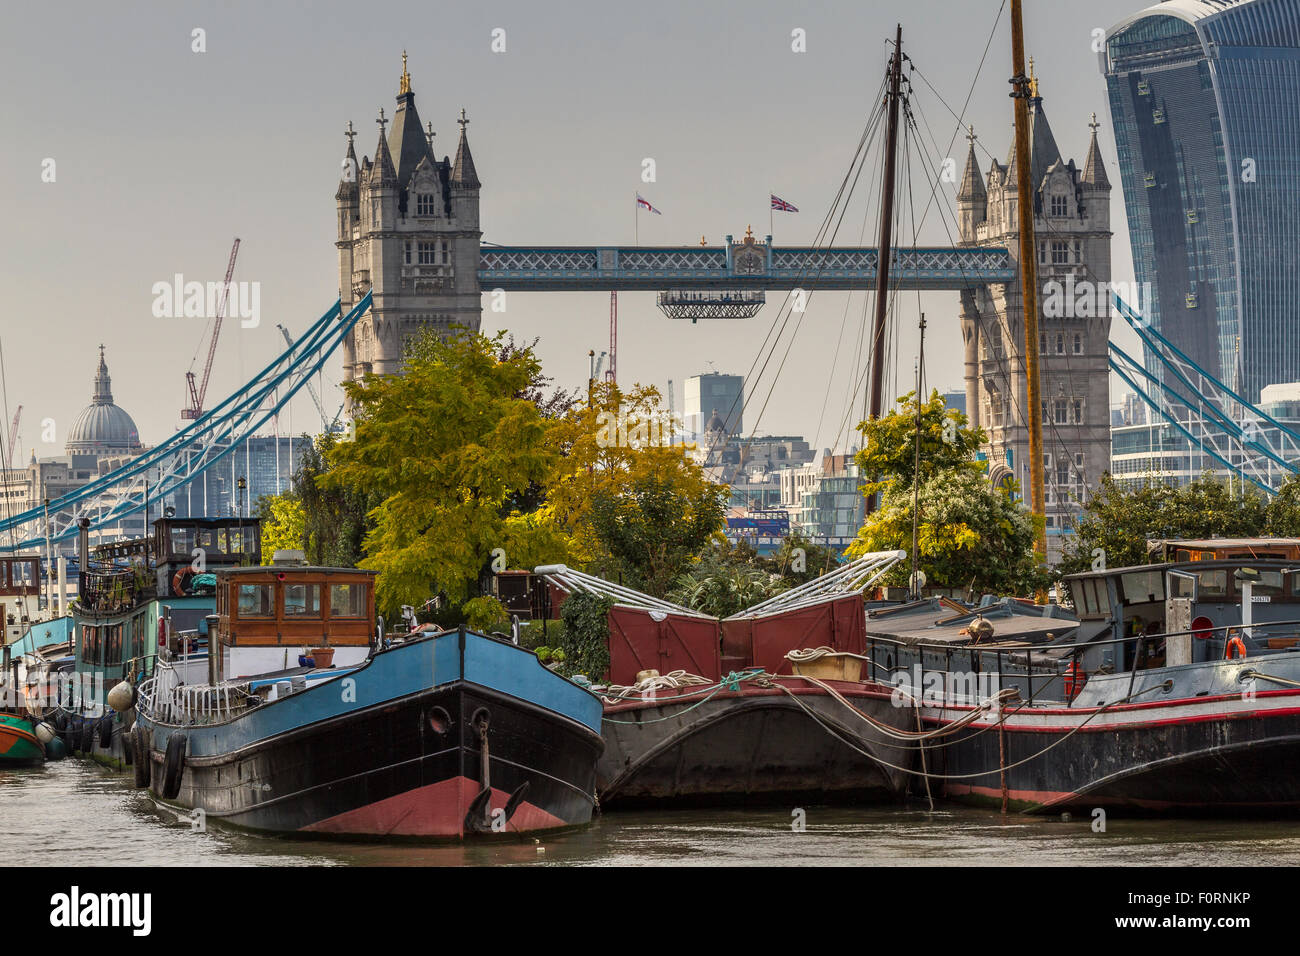 Houseboats and barges moored near Tower Bridge in Bermondsey  with 20 Fenchurch St , The Walkie Talkie Building, - Stock Image